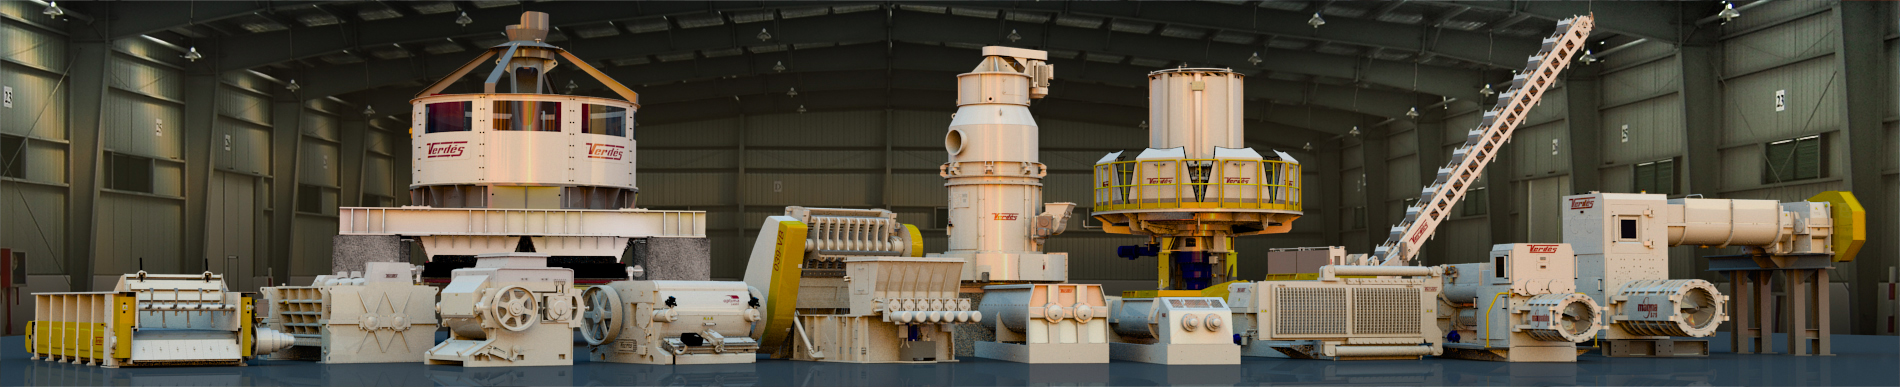 Verdés machines for grinding, crushing and extrusion of clay, minerals and wastes